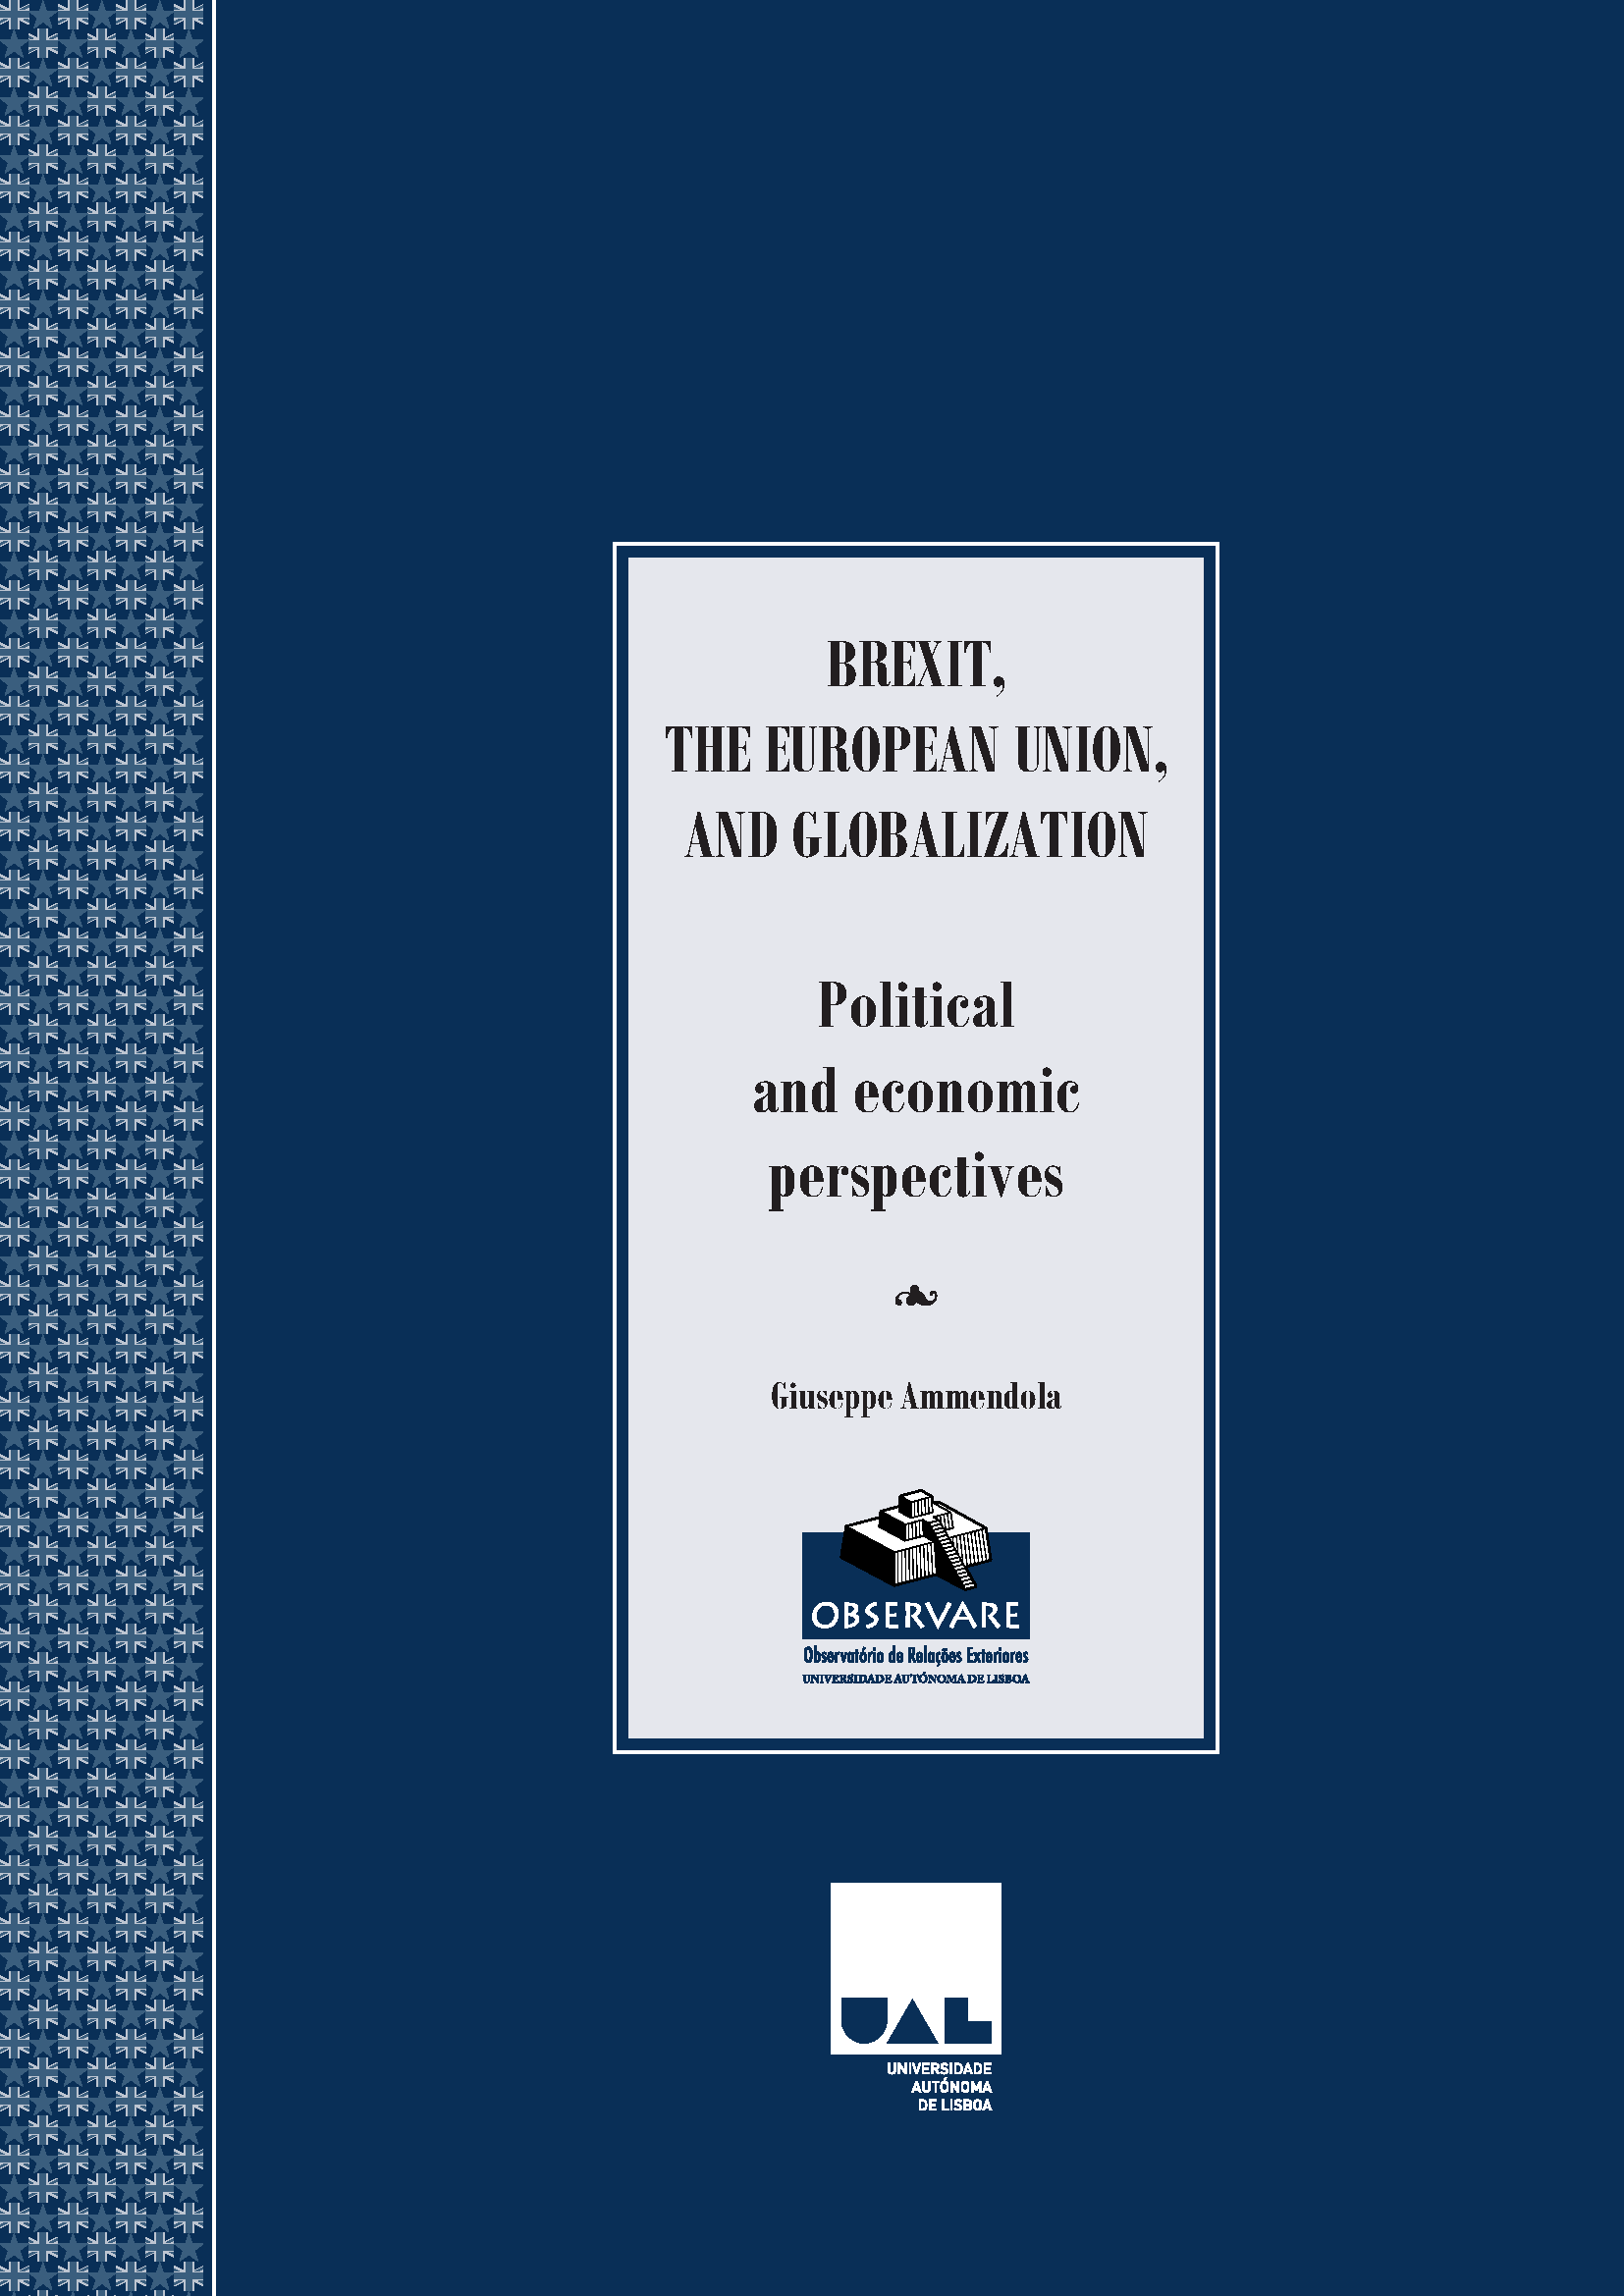 Brexit, The European Union, and Globalization – Political and Economic Perspectives